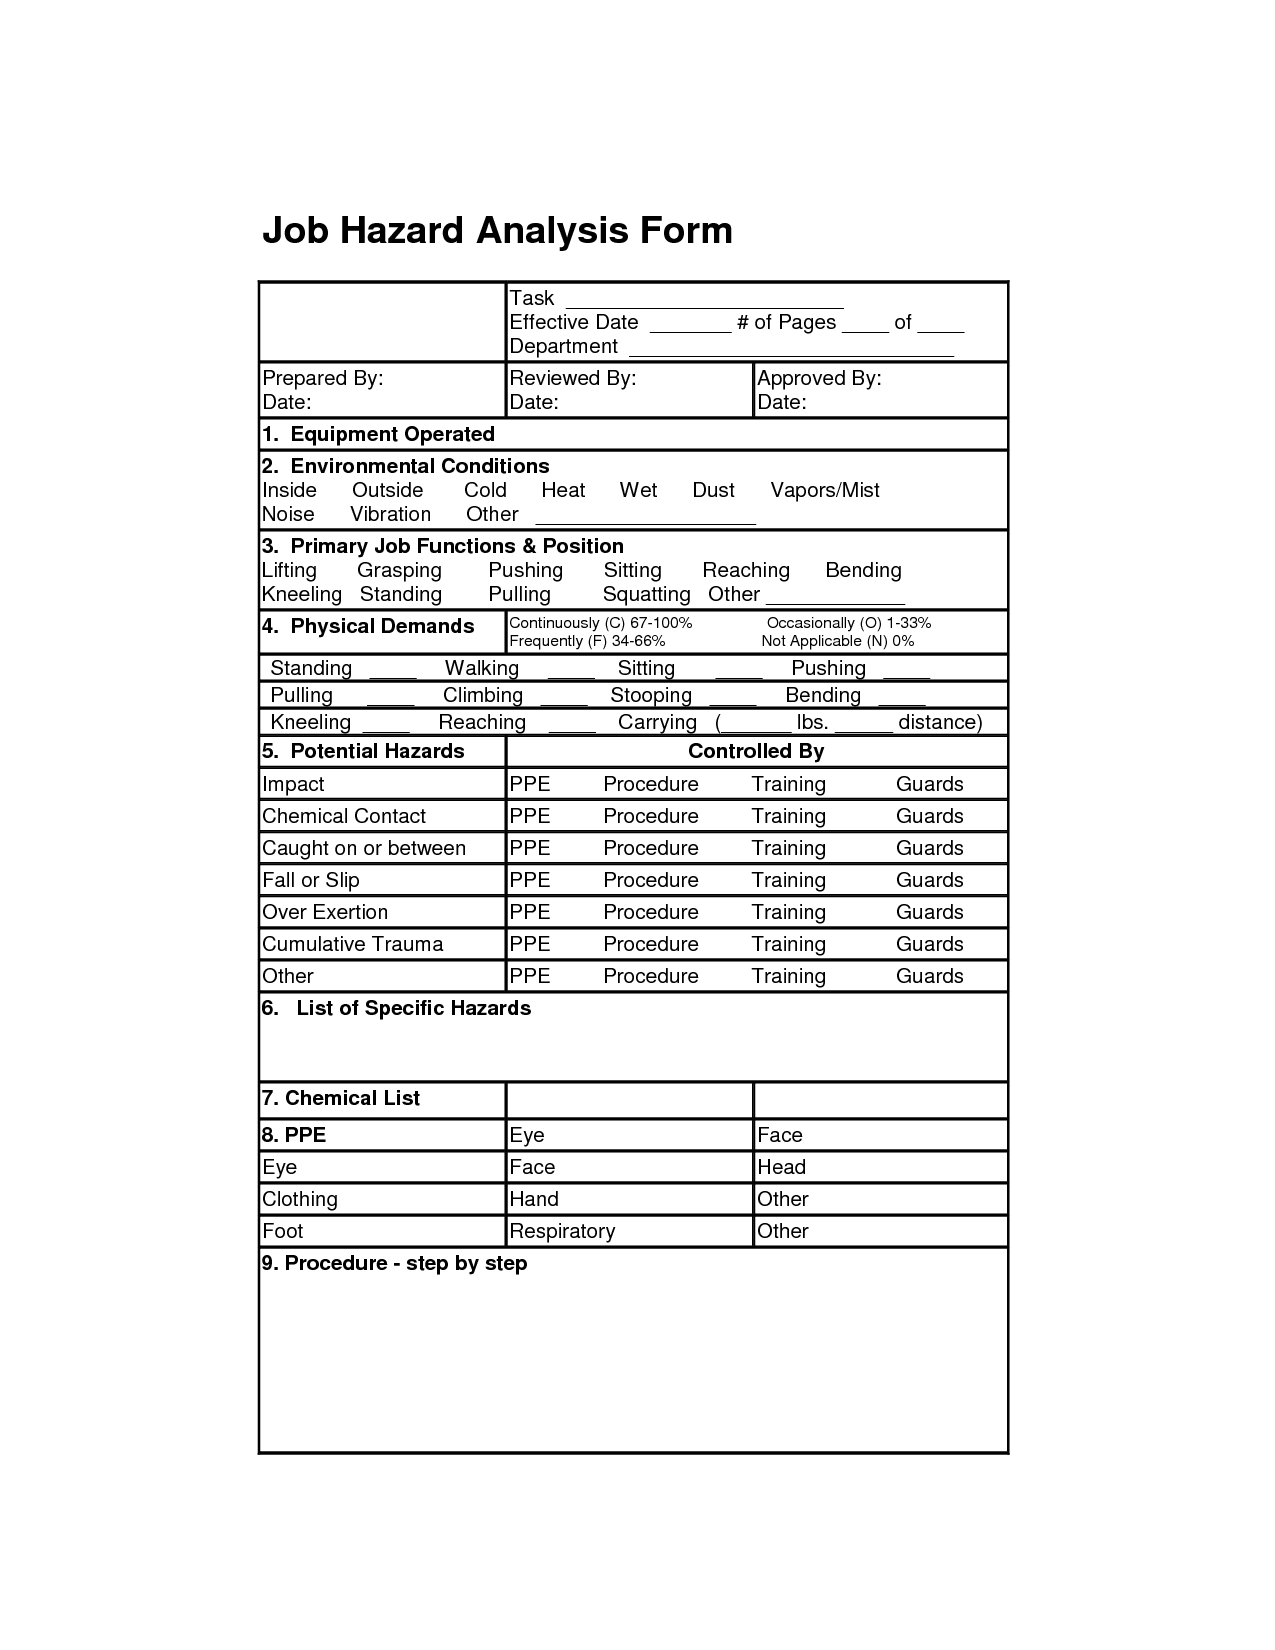 Job hazard analysis form job analysis forms pinterest for Arc flash policy template